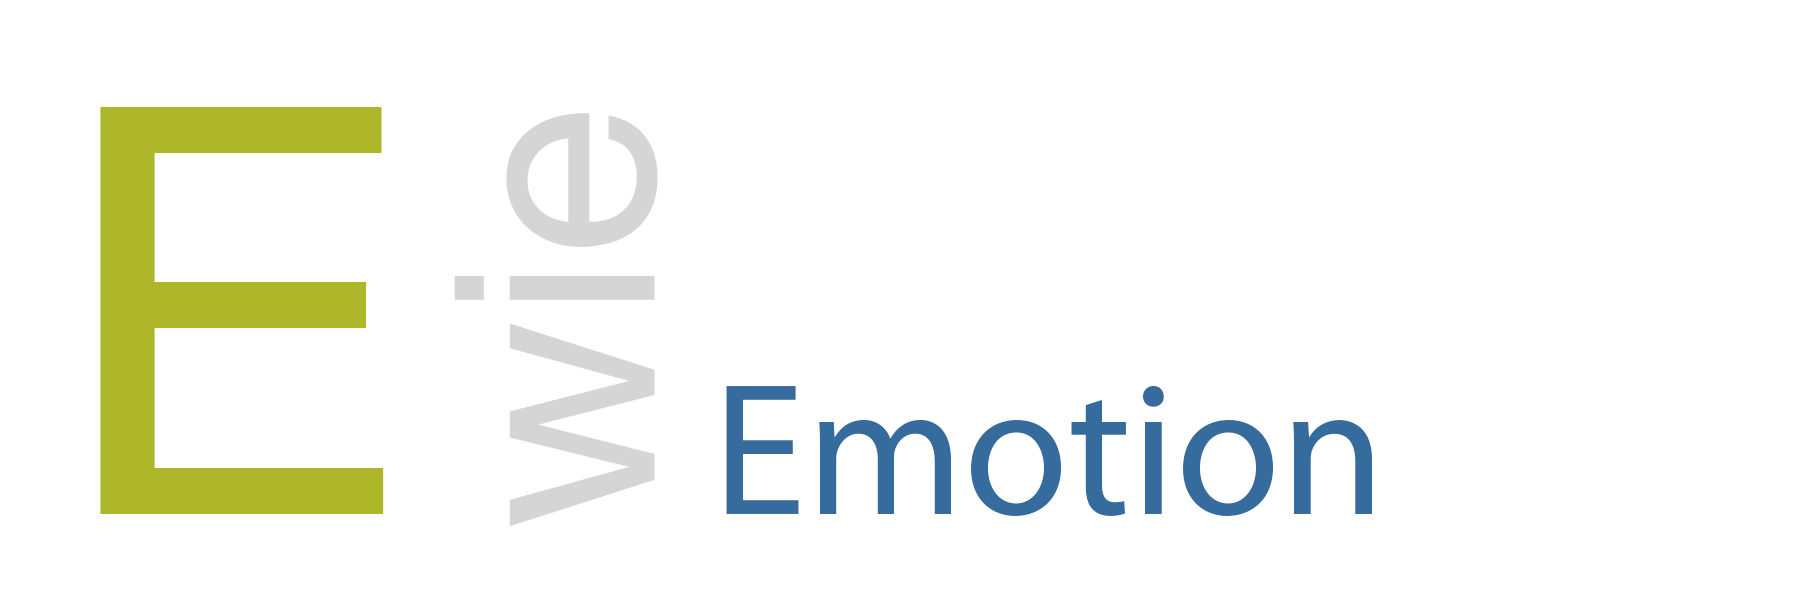 wm emotion